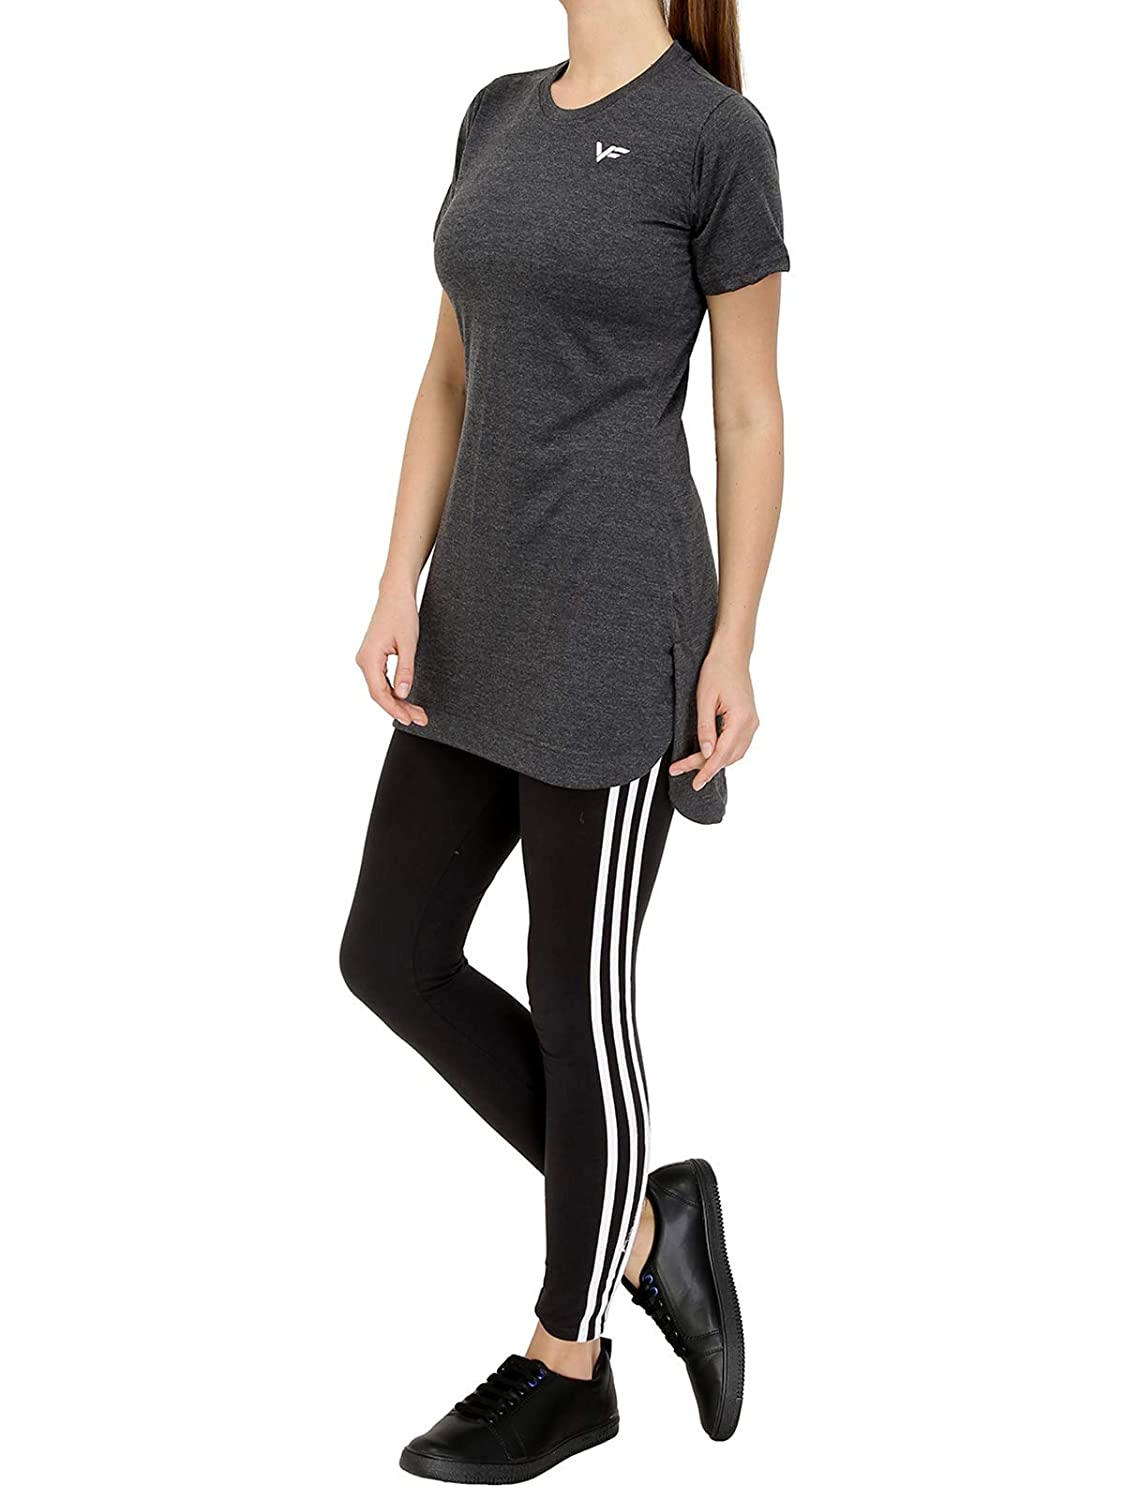 cea4534d7 Vero Forza Masq Long Tshirt for Sportswear - Activewear Half Sleeves  (Cotton)